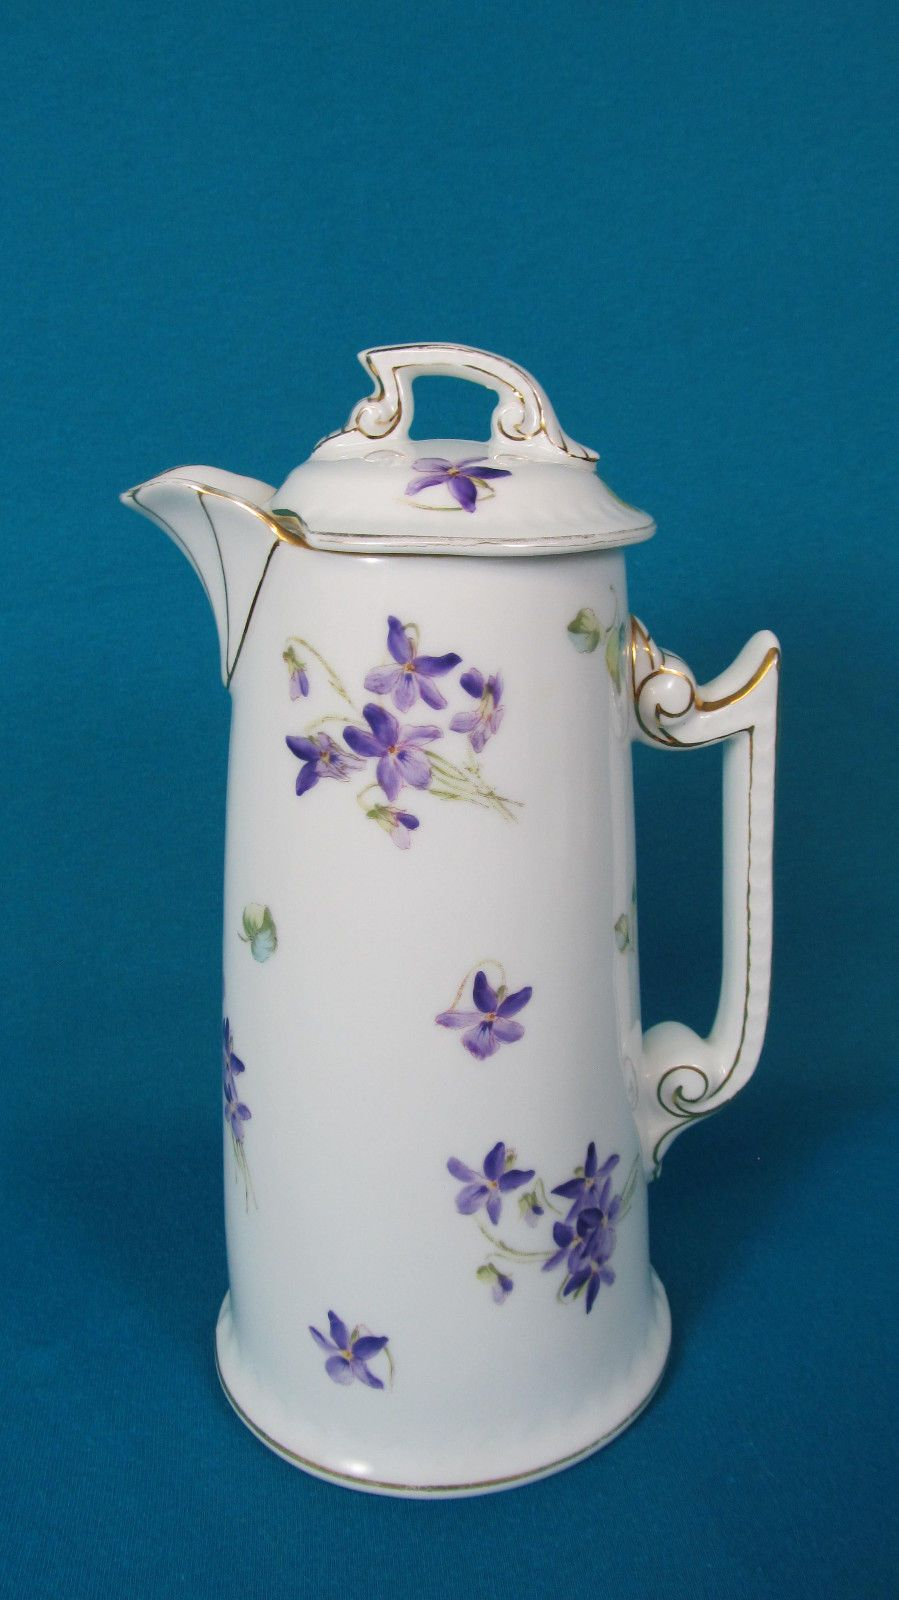 T&V Tressman Limoges Violets Chocolate Pot with Rare Tray in Pottery & Glass, Pottery & China, China & Dinnerware, Limoges   eBay